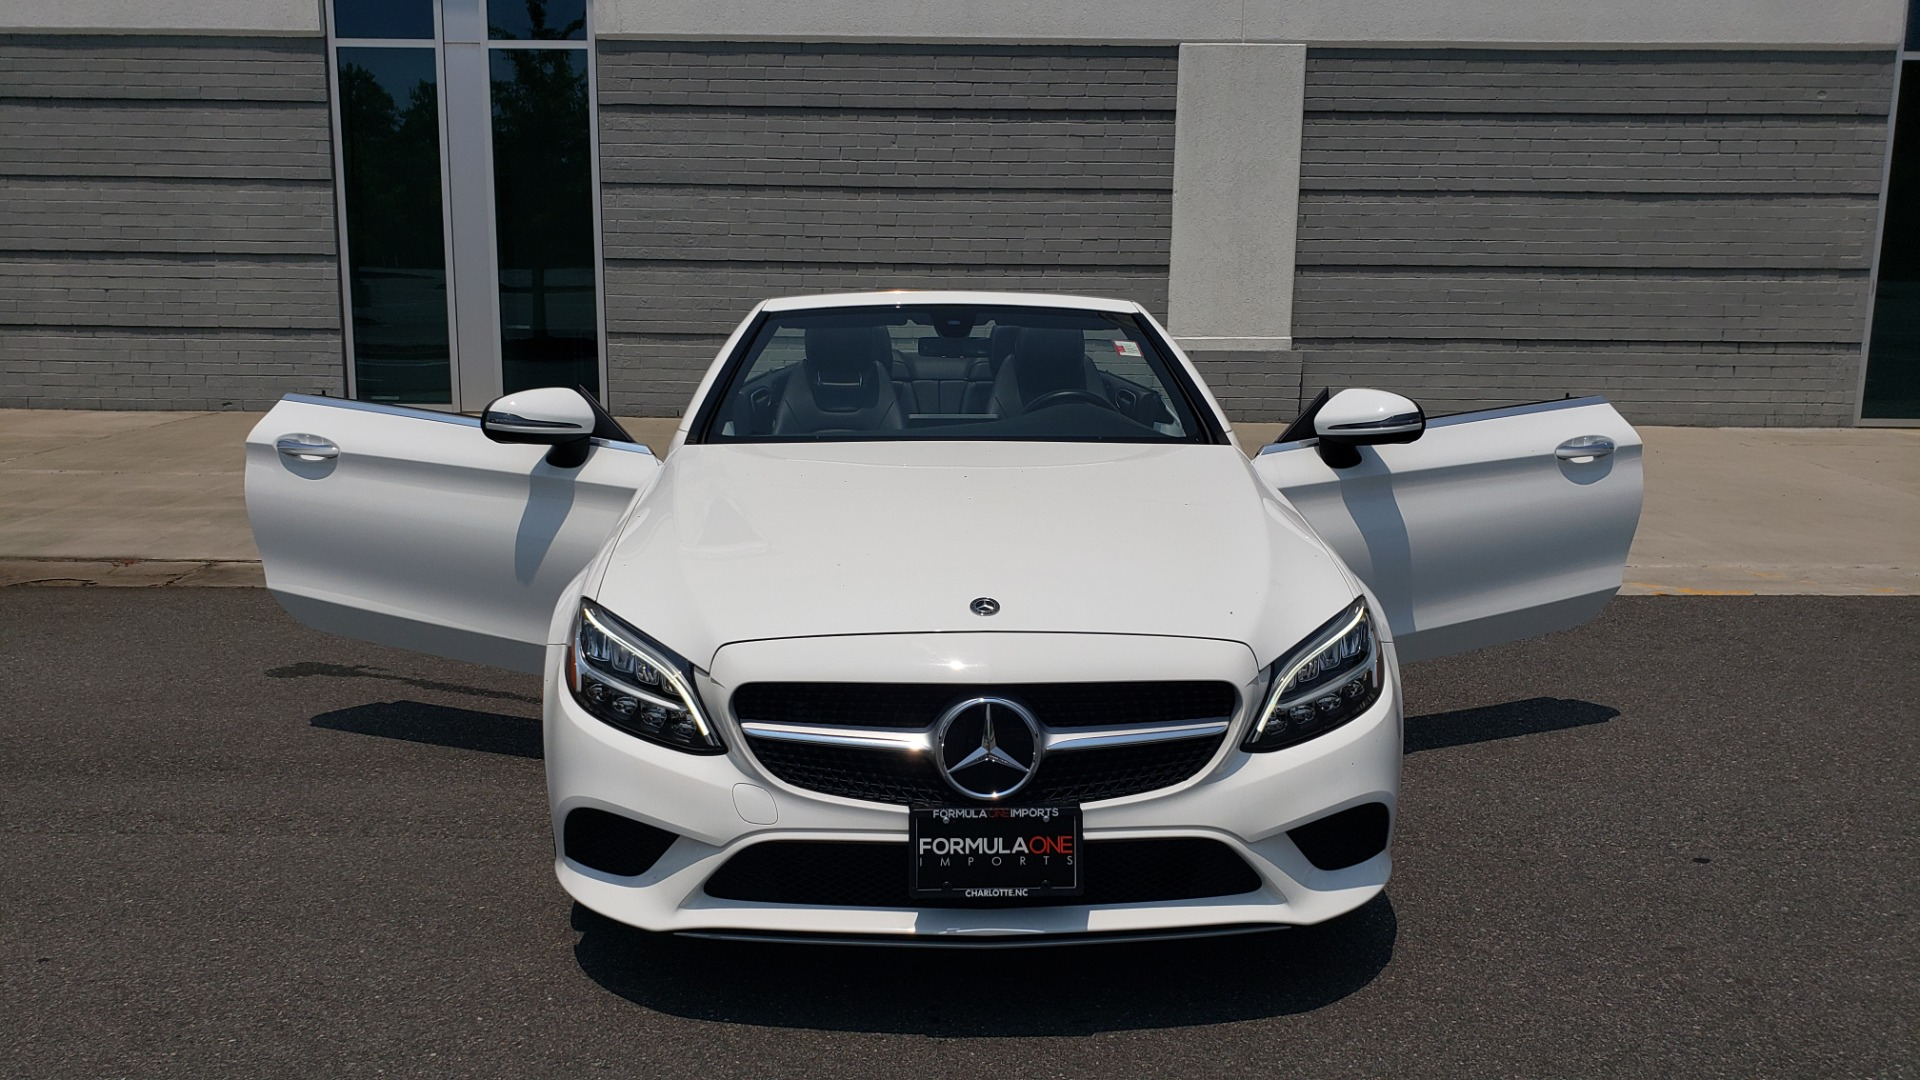 Used 2019 Mercedes-Benz C-CLASS C 300 CABRIOLET 2.0L / AUTO / NAV / HD RADIO / REARVIEW for sale $46,995 at Formula Imports in Charlotte NC 28227 24